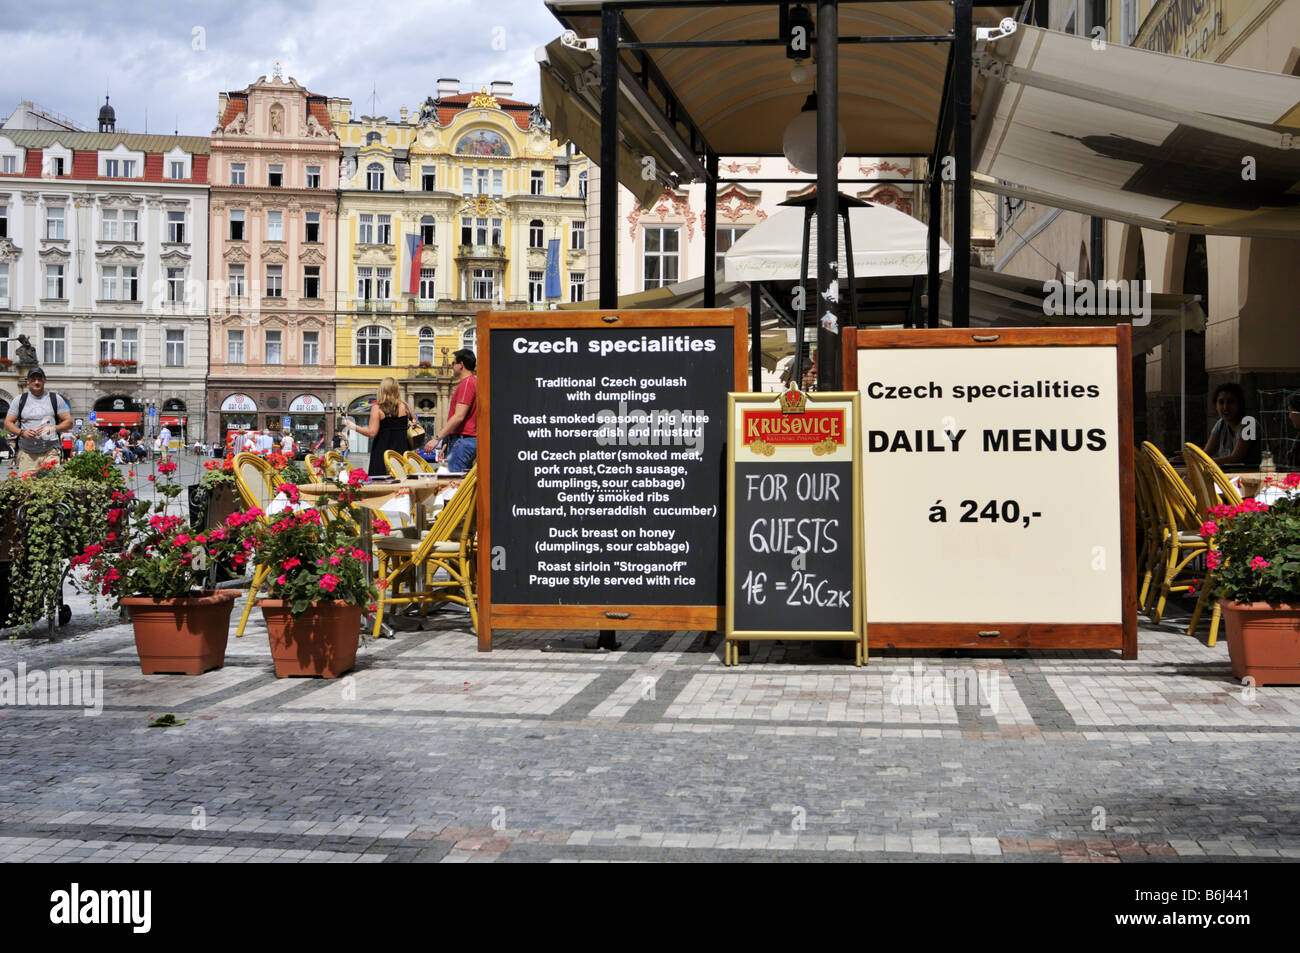 Prag Restaurants Böhmische Küche Czech Cuisine Stockfotos And Czech Cuisine Bilder Alamy